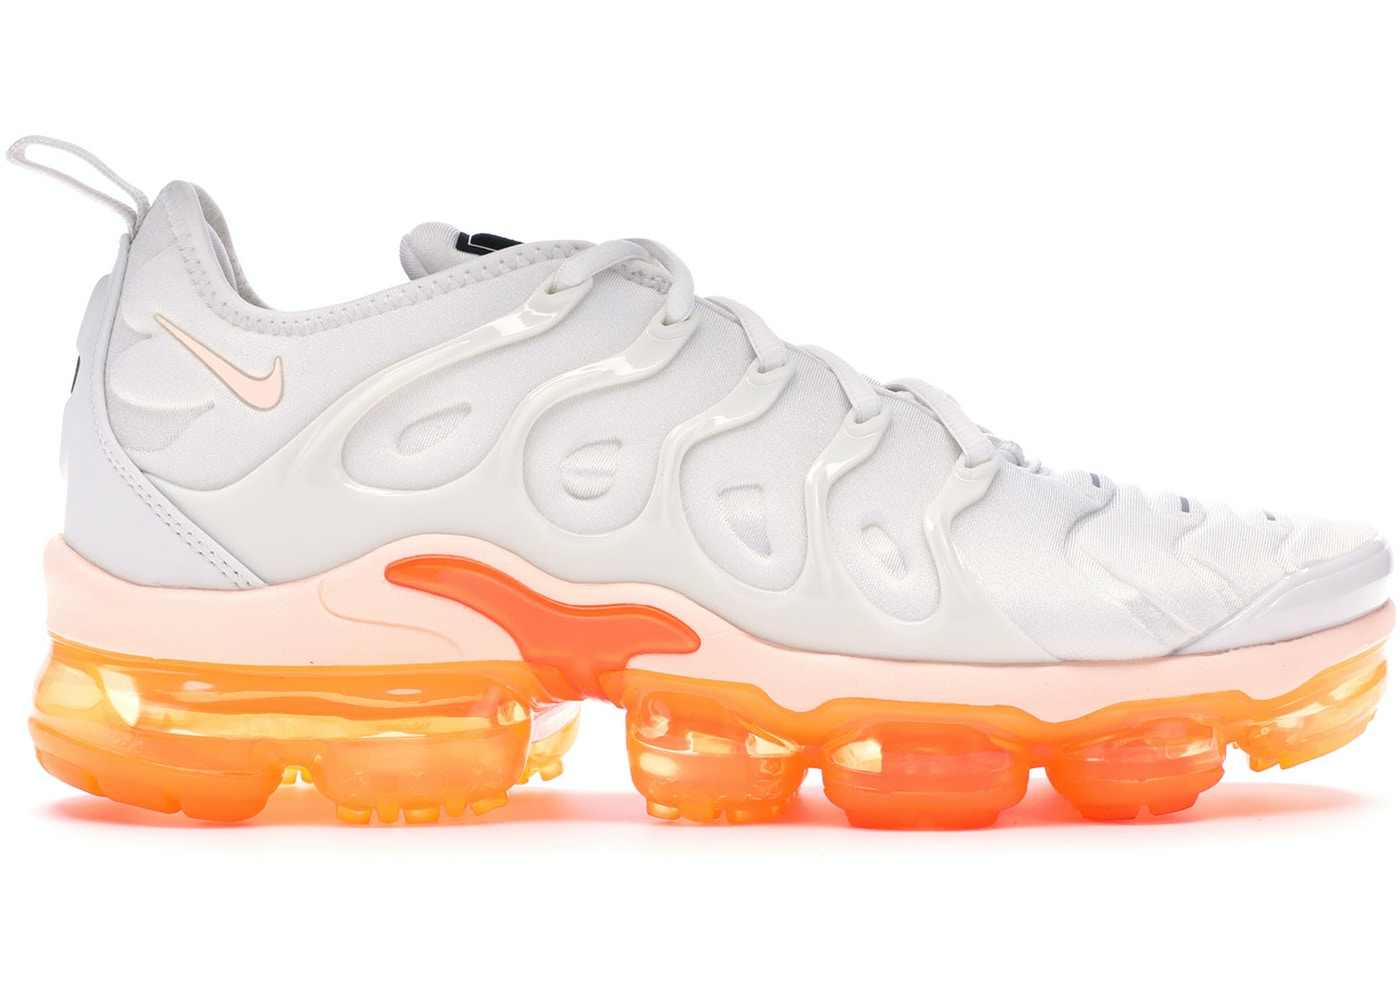 Air VaporMax Plus Creamsicle (W) - AO4550-005 ded5a2a47